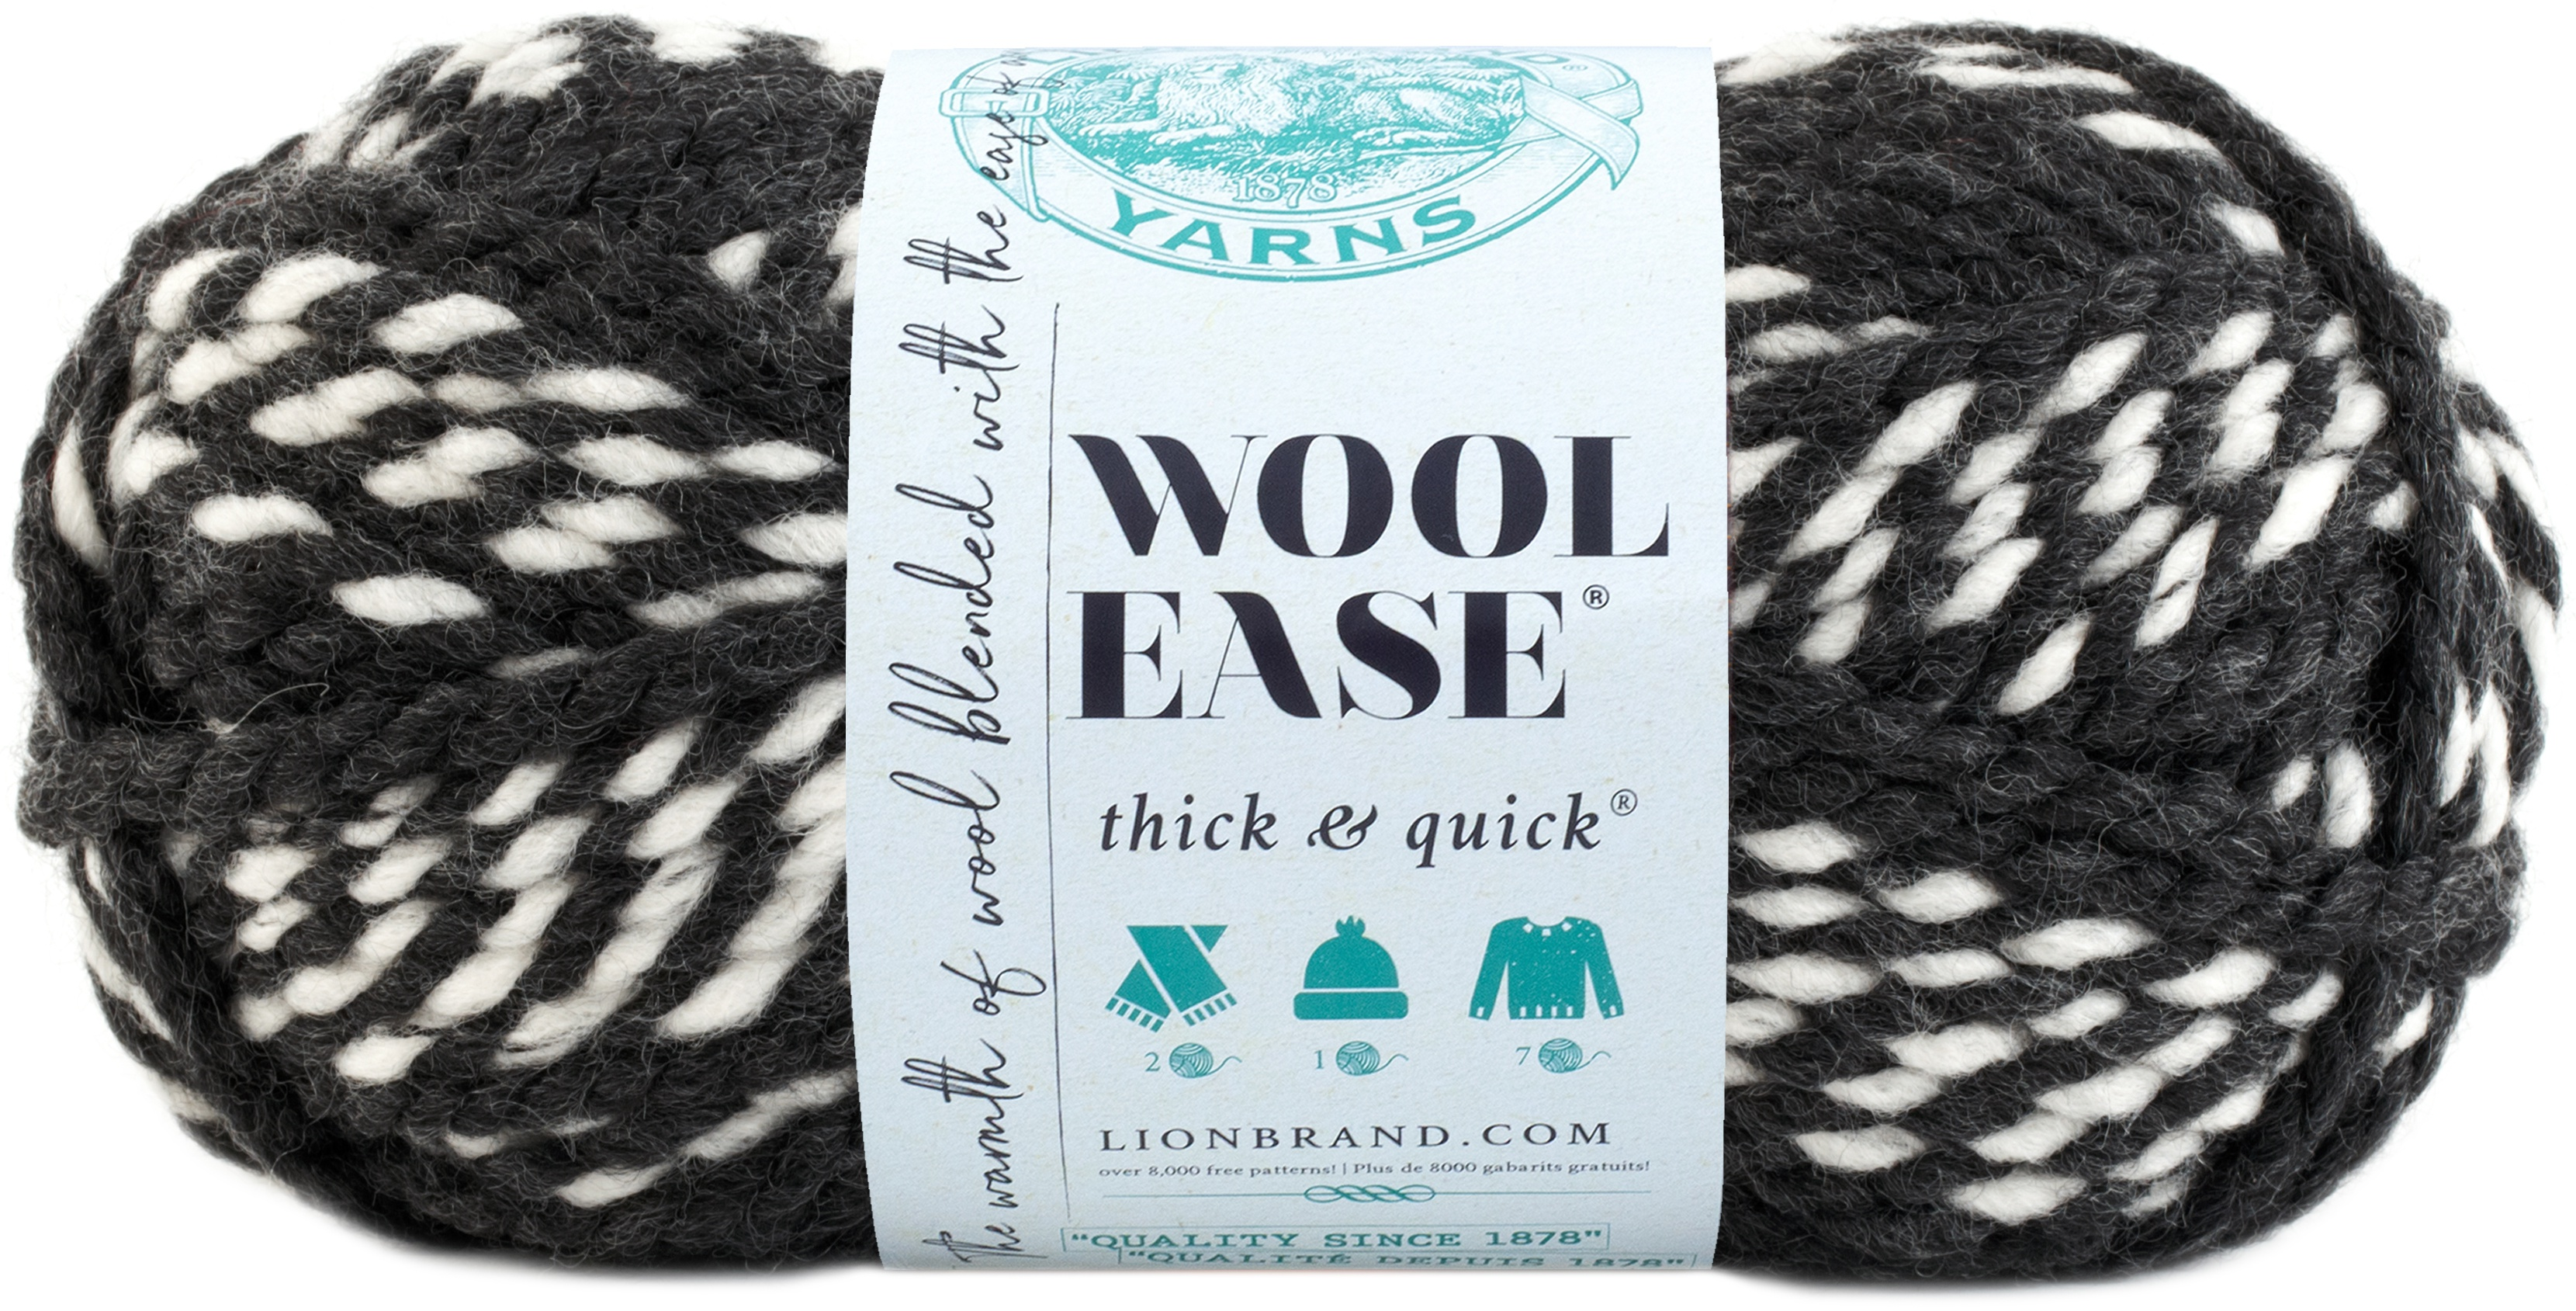 640-601 Lion Brand Wool-Ease Thick /& Quick Yarn-Hoyas Stripes